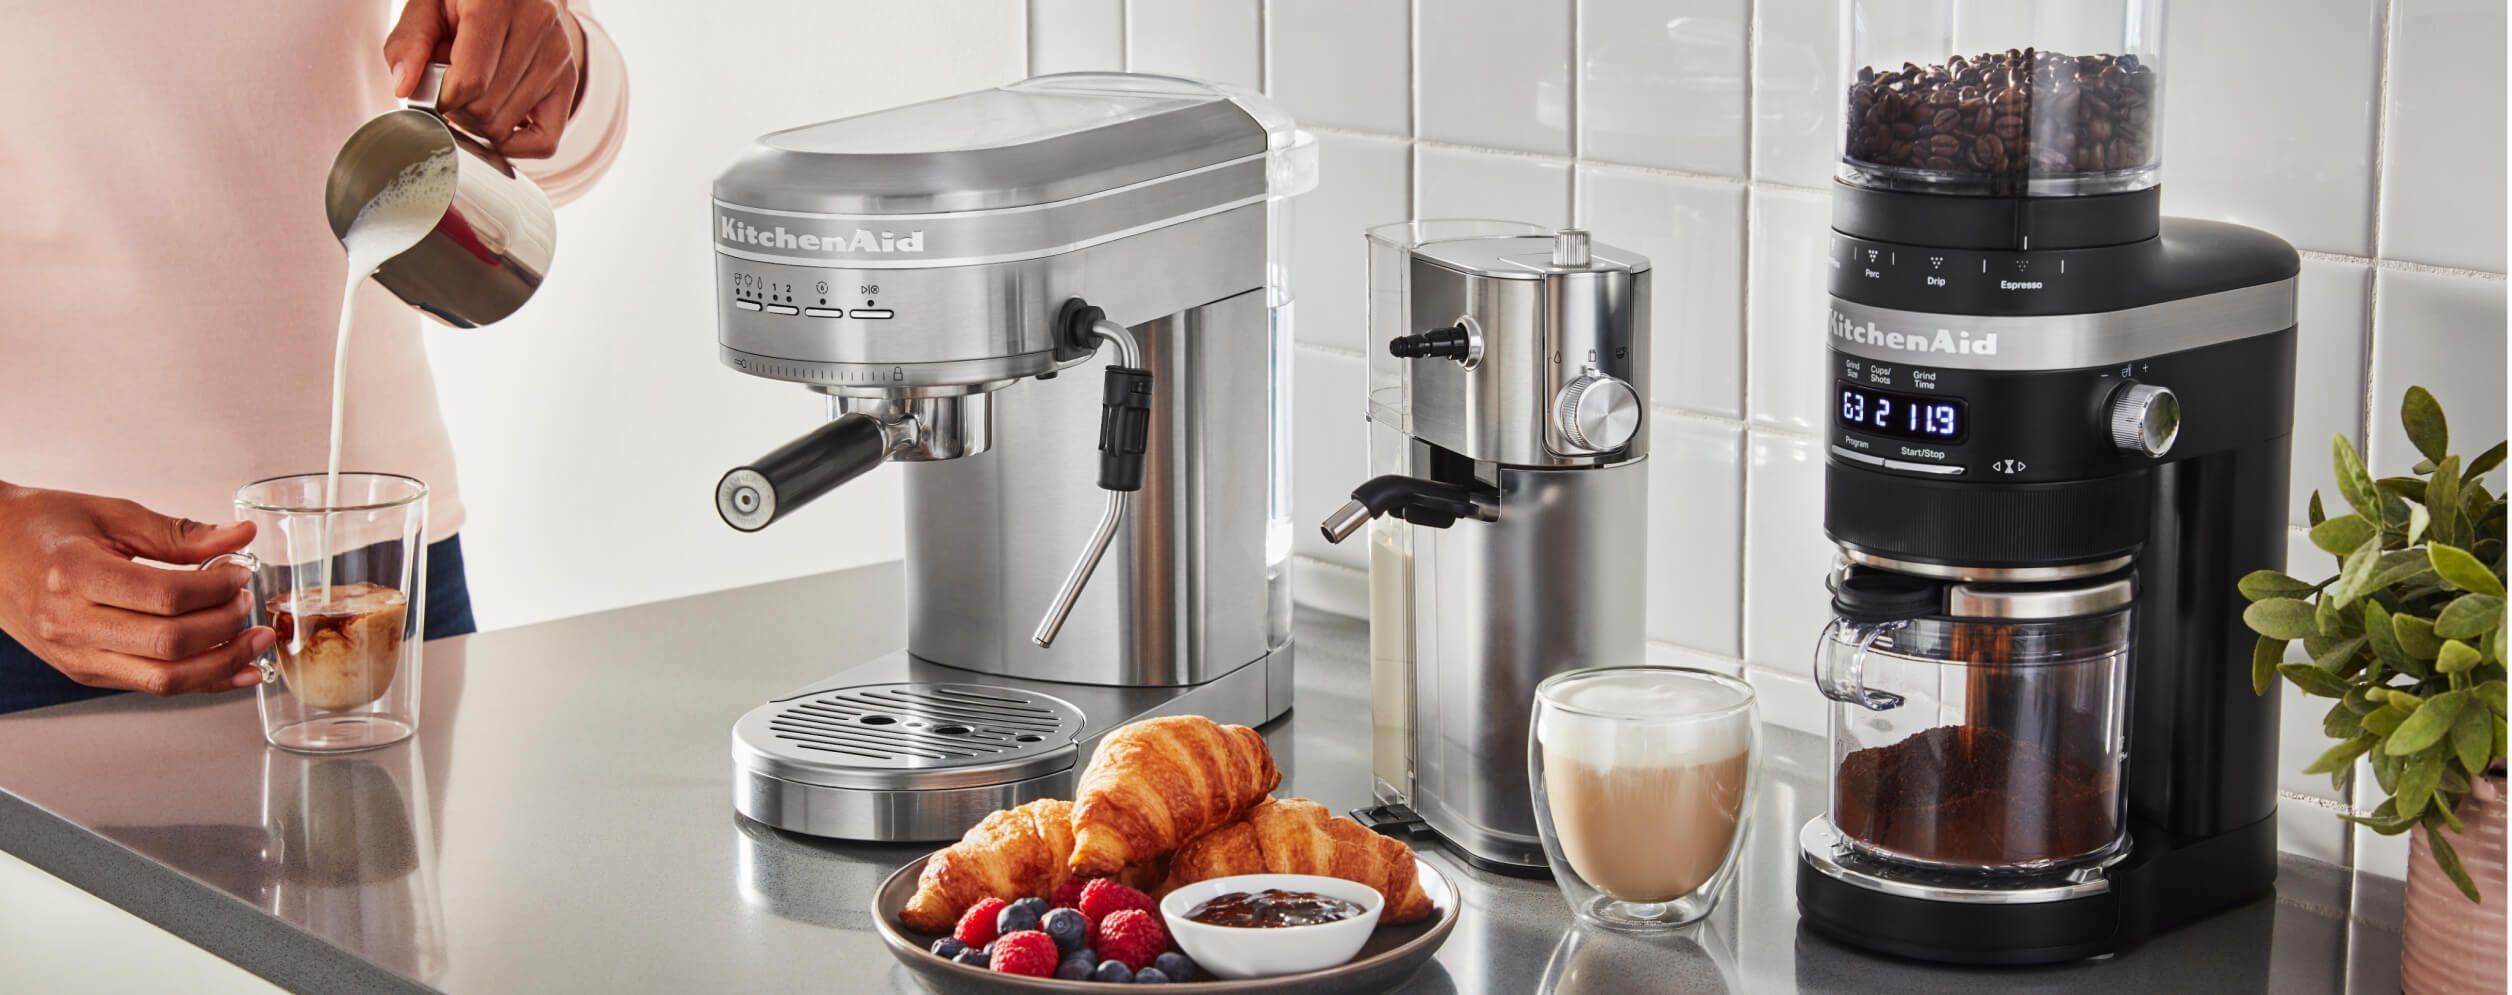 A KitchenAid® Espresso Machine and Burr Coffee Grinder resting on a counter.